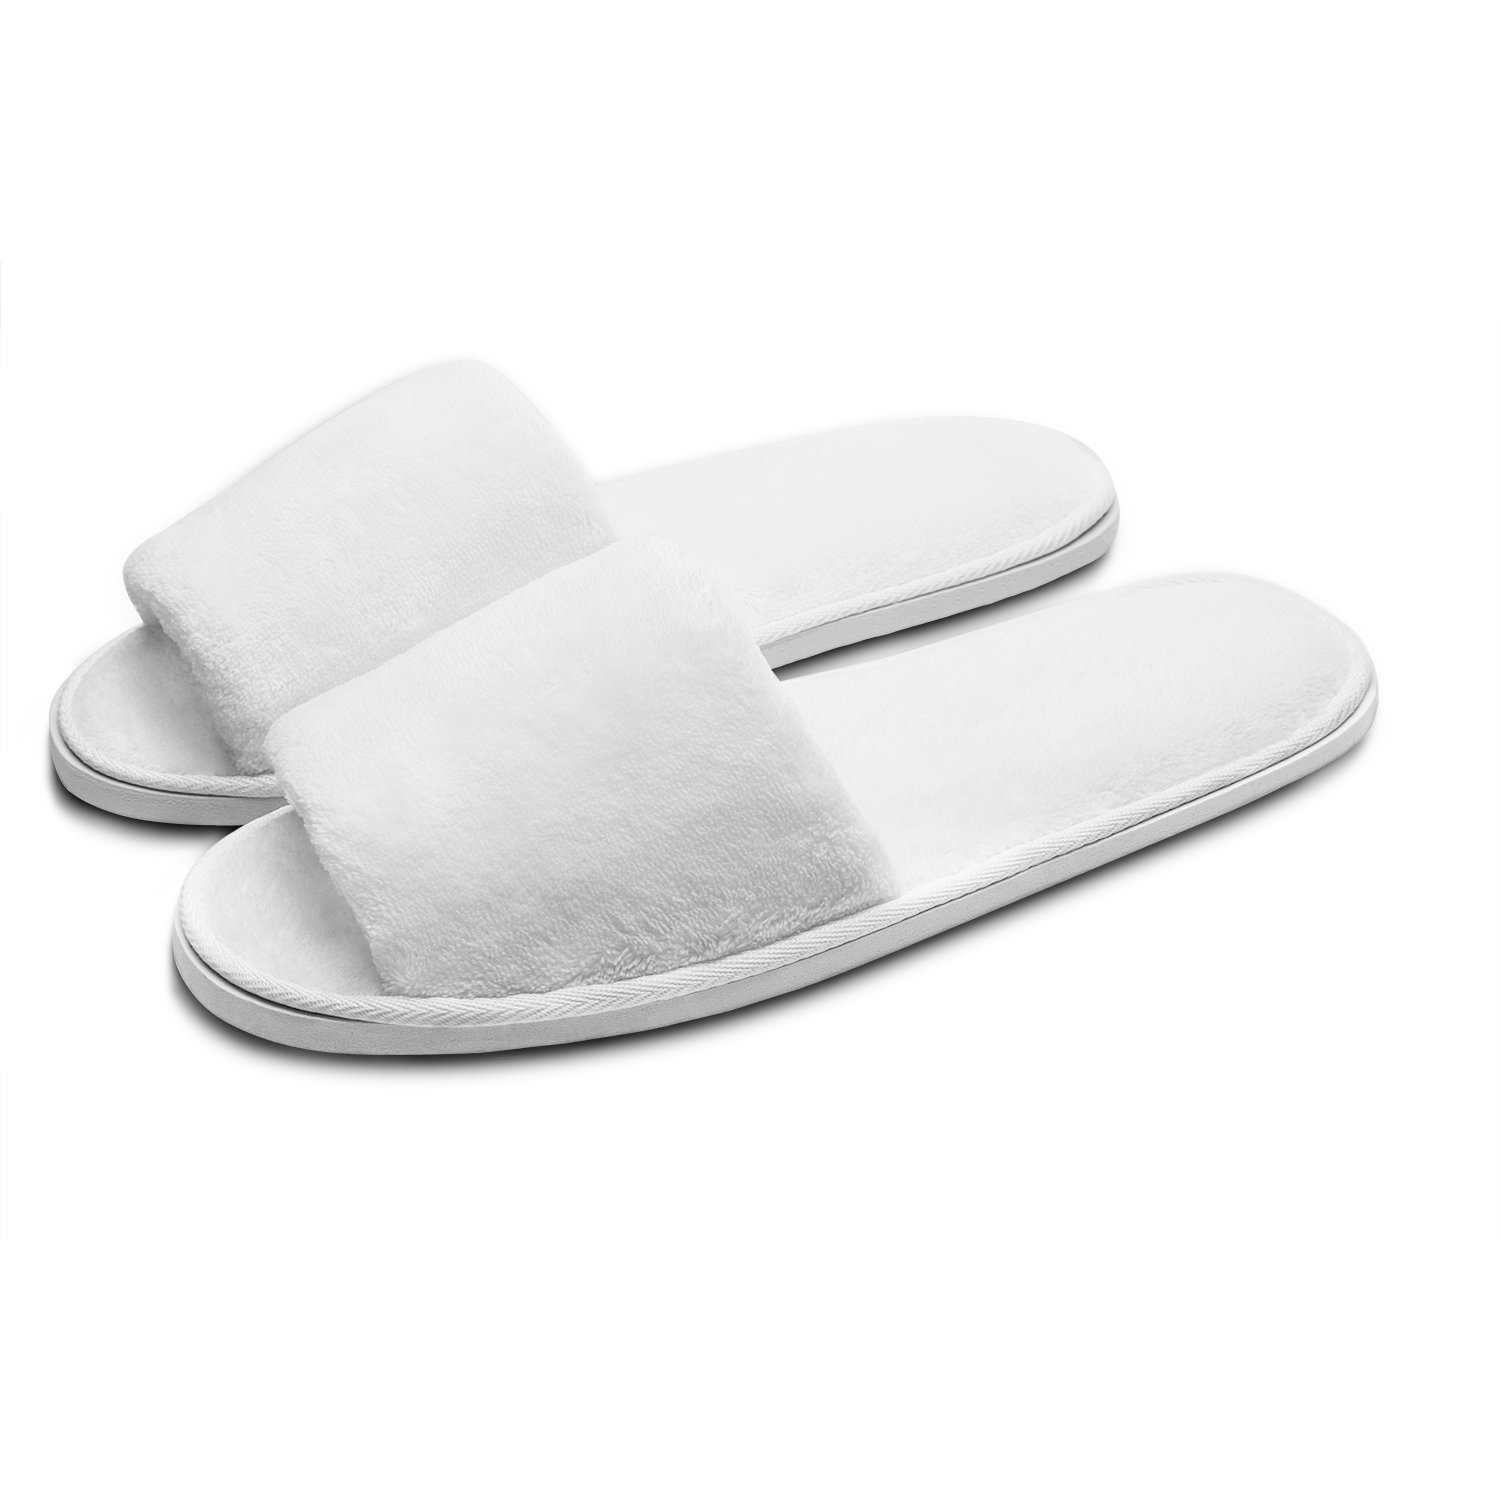 echoapple 5 Pairs Deluxe Open Toe White Slippers Spa, Party Guest, Hotel Travel by echoapple